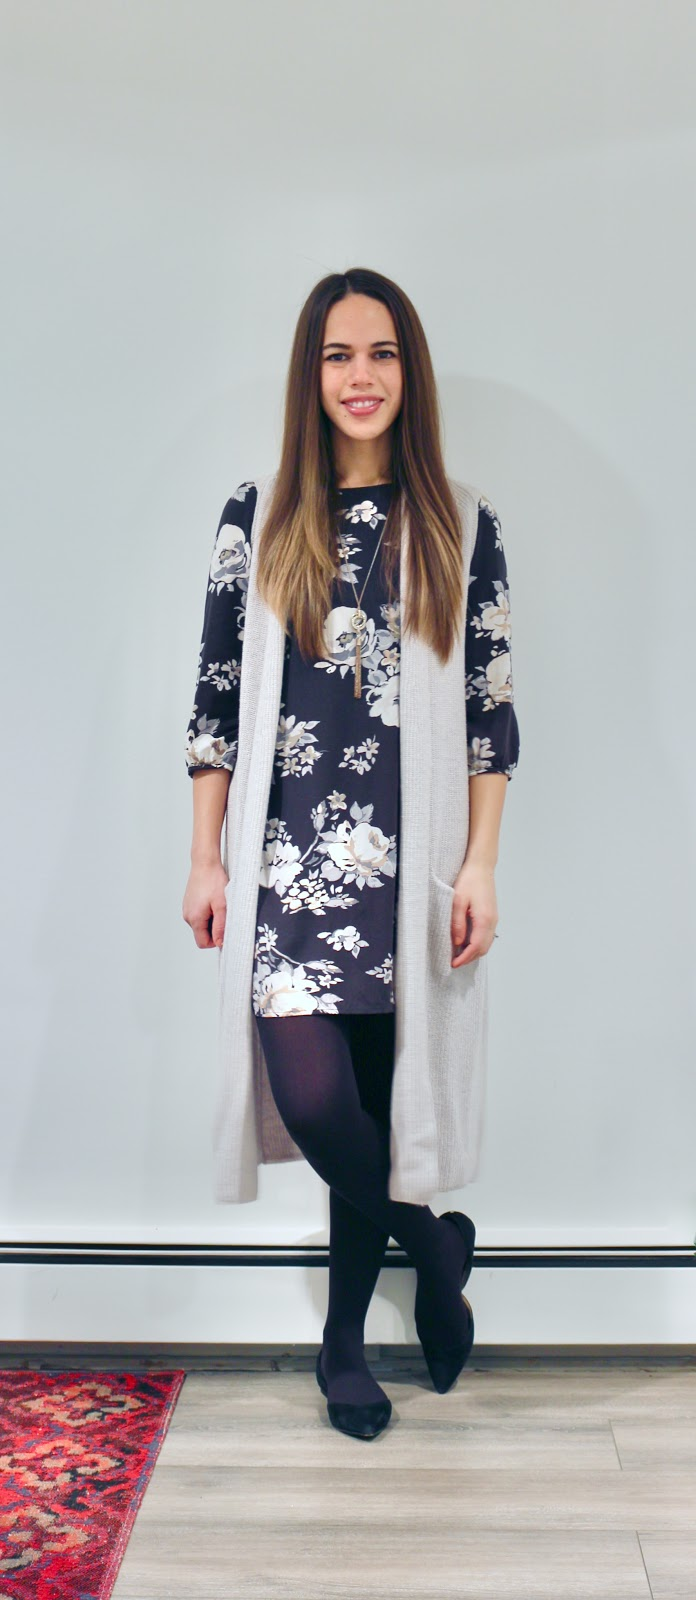 Jules in Flats - Floral Shift Dress with Knit Duster Sweater Vest (Business Casual Winter Workwear on a Budget)